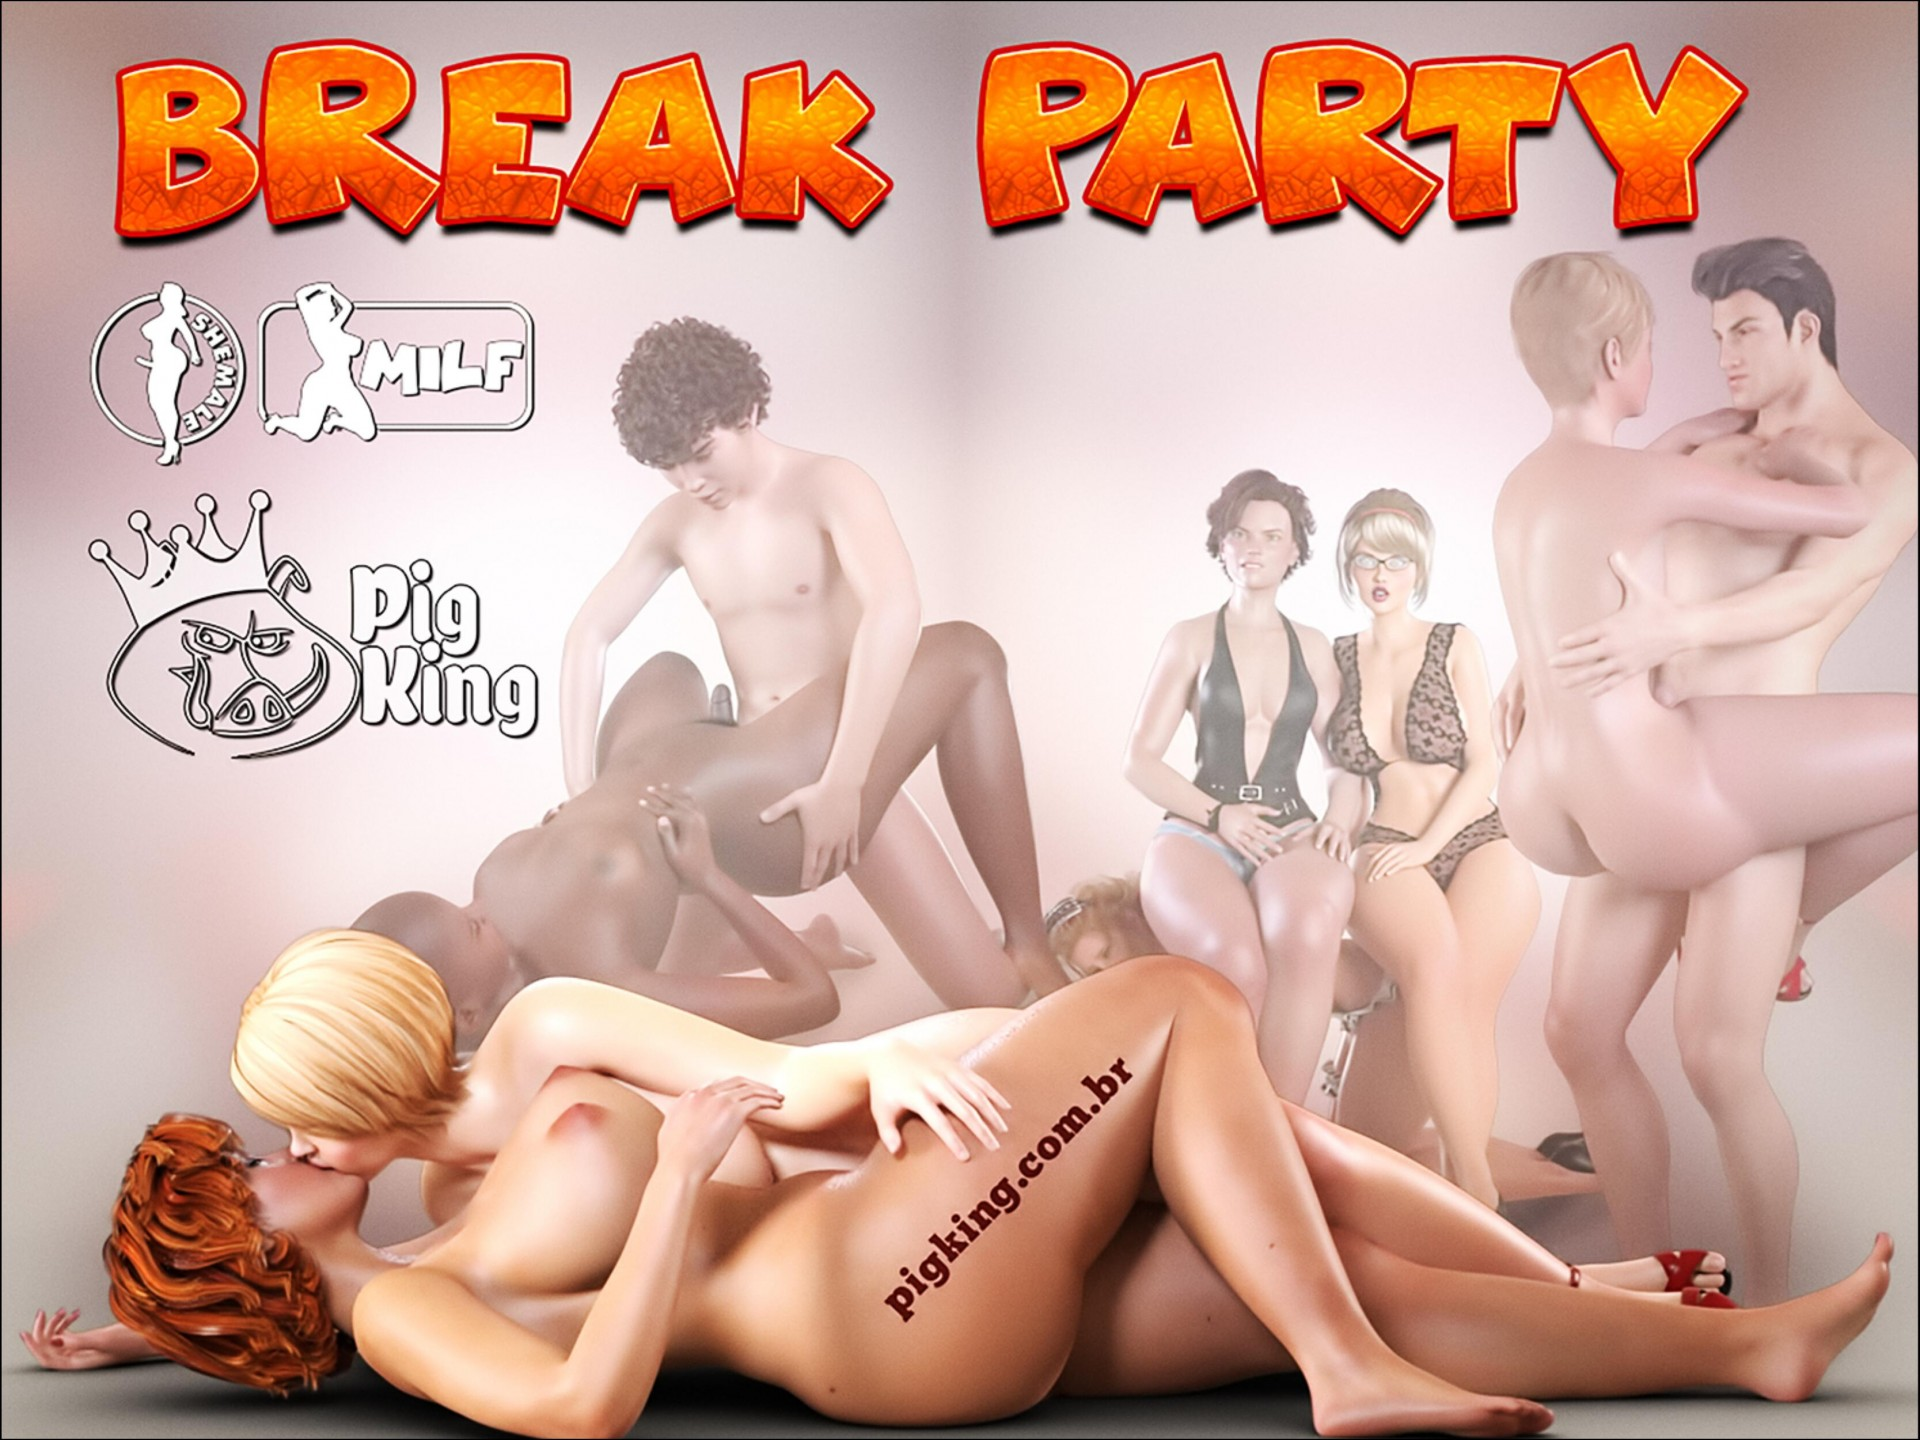 PigKing – Break Party